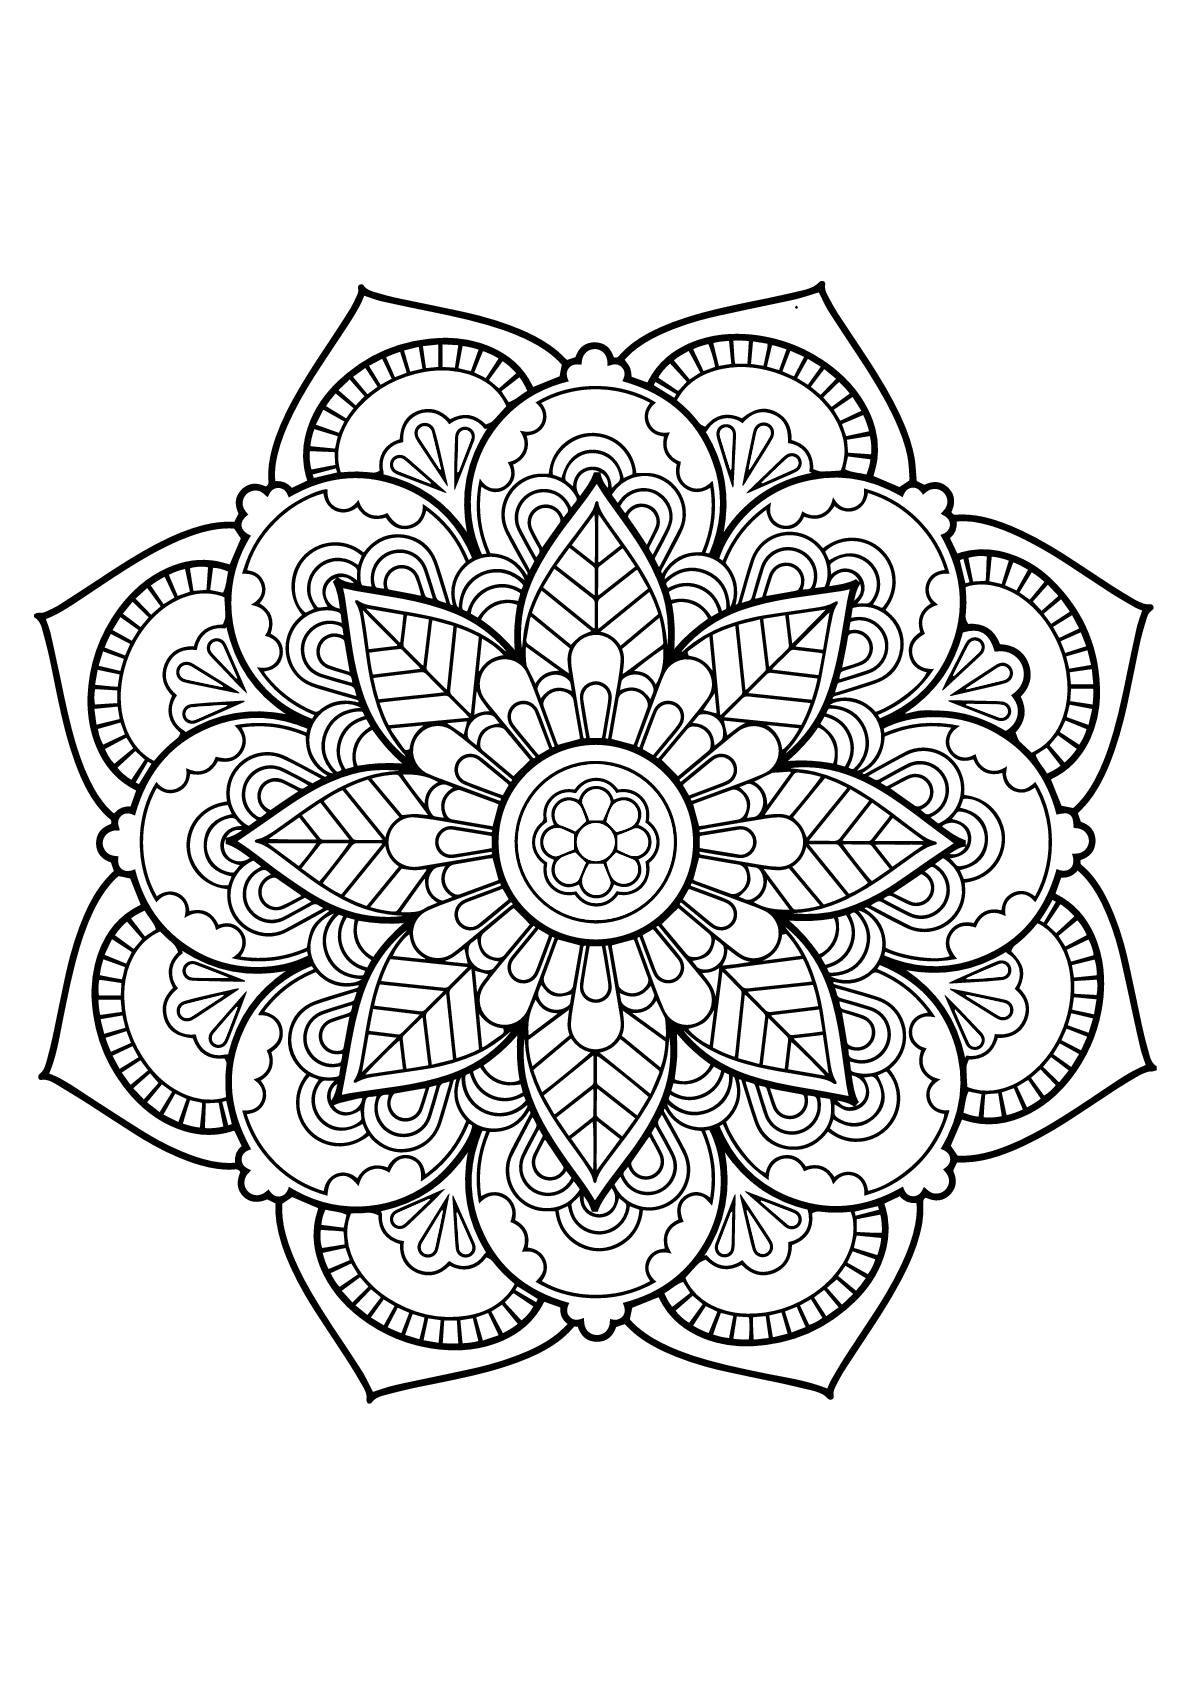 free mandala coloring pages for adults 20 free printable mandala coloring pages for adults mandala free pages for coloring adults